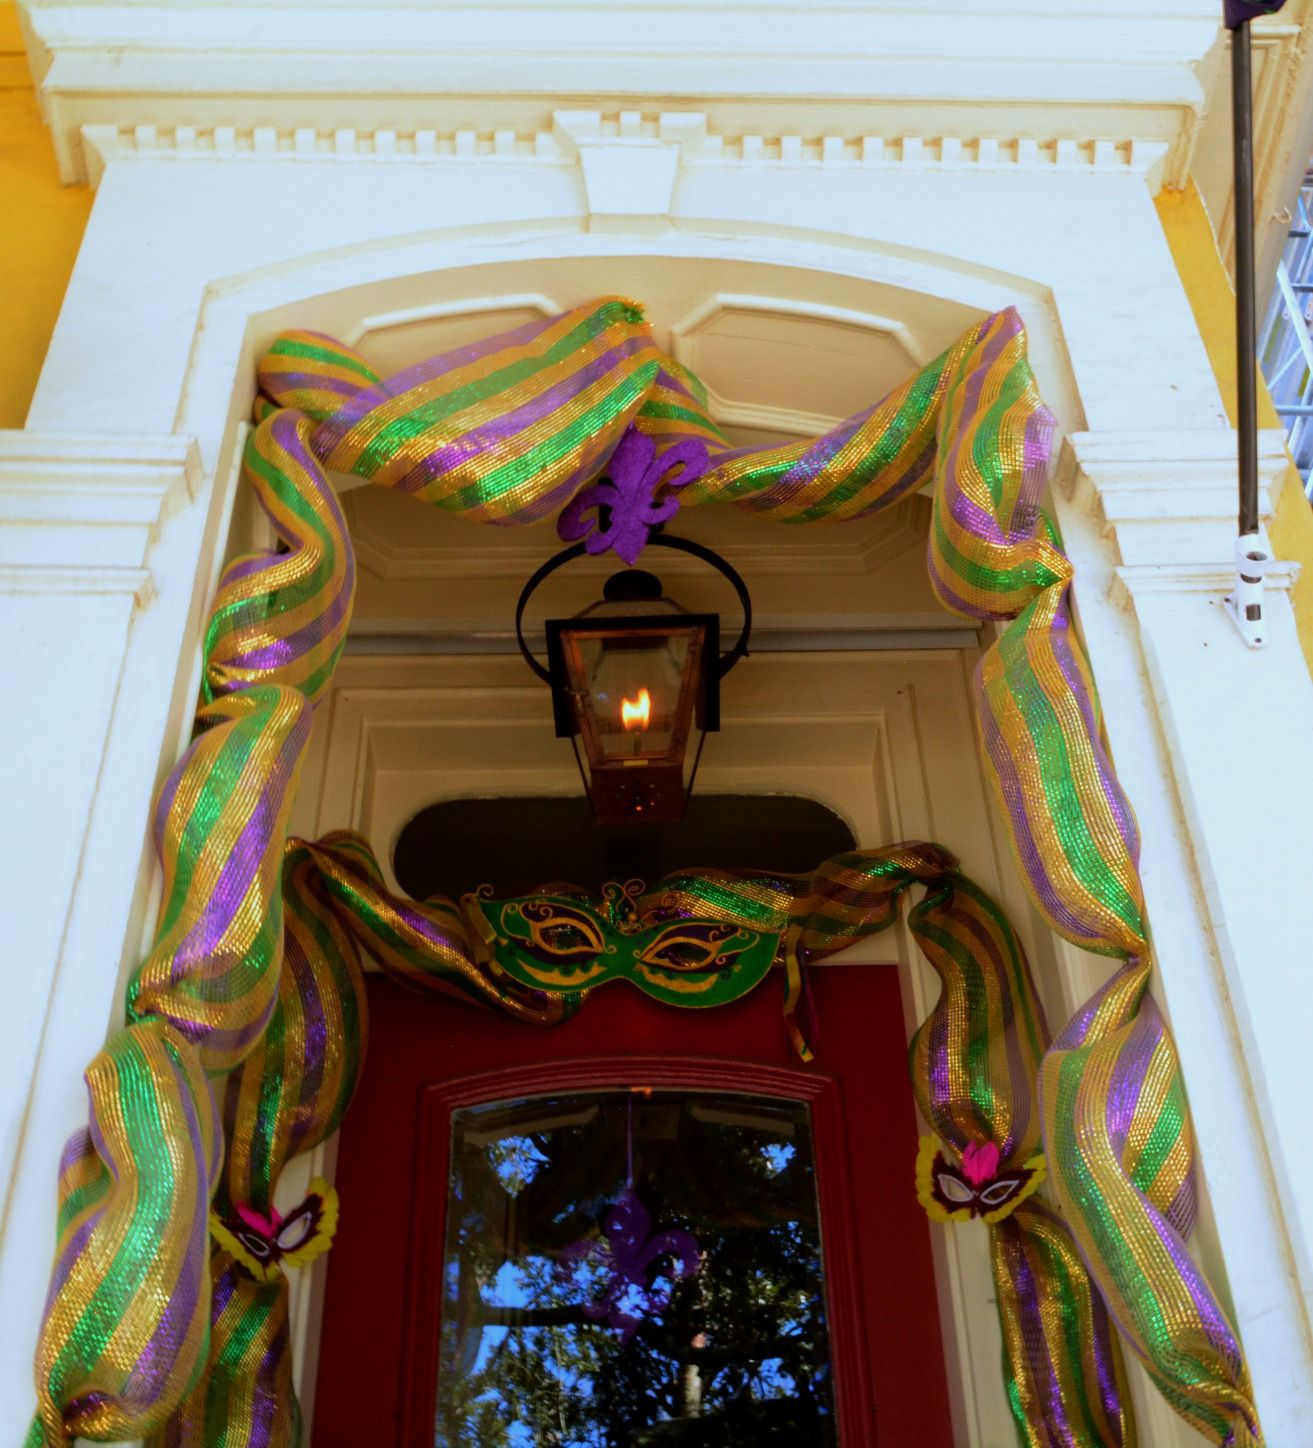 The French Quarter knows how to play up Mardi Gras!  (scheduled via http://www.tailwindapp.com?utm_source=pinterest&utm_medium=twpin&utm_content=post149440297&utm_campaign=scheduler_attribution)